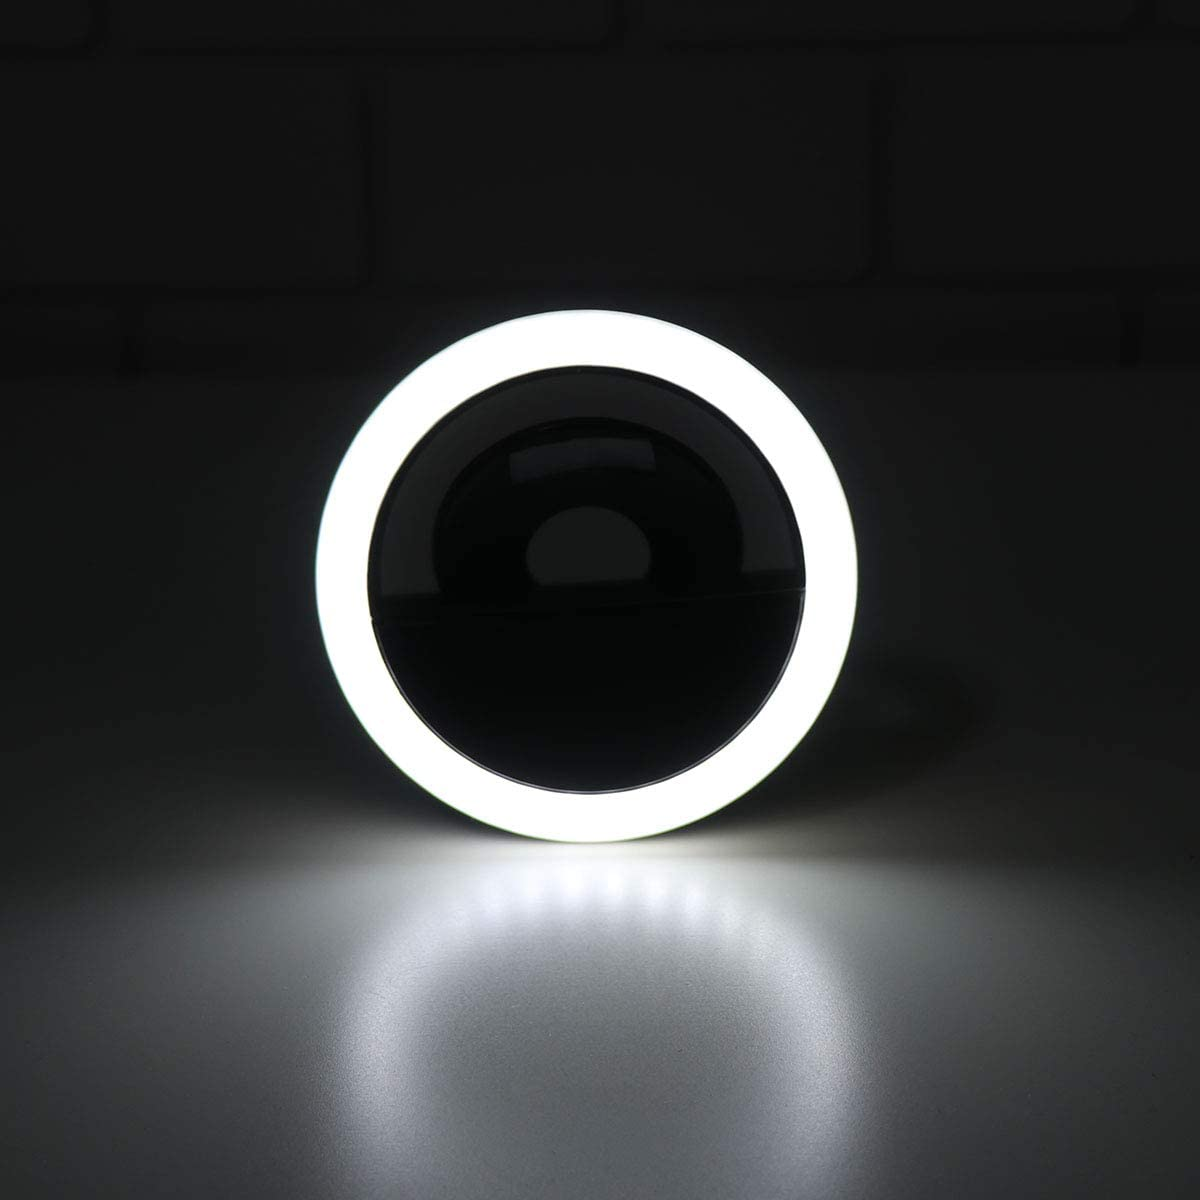 Balacoo Clip on LED Selfie Ring Light USB Rechargeable Selfie 3 Modes LED Camera Light for Smart Phones Camera Photographie Phones